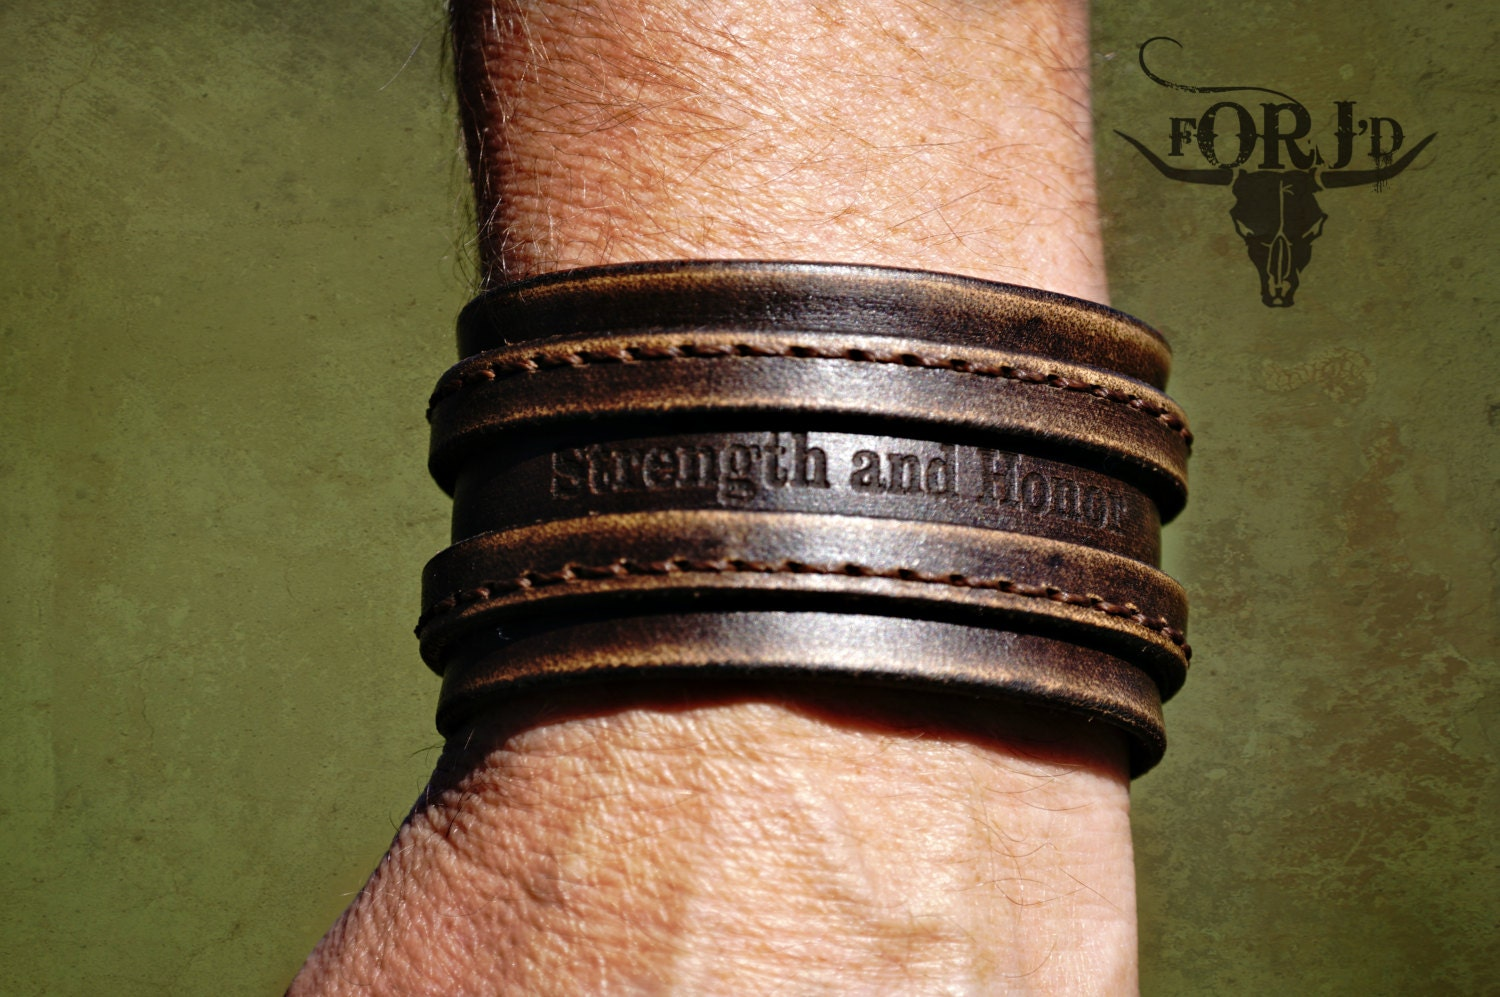 Vintage Leather Cuff Bracelet,genuine Leather Bracelet, Men's Leather  Bracelet, Women's Leather Bracelet, Personalized Leather Bracelet